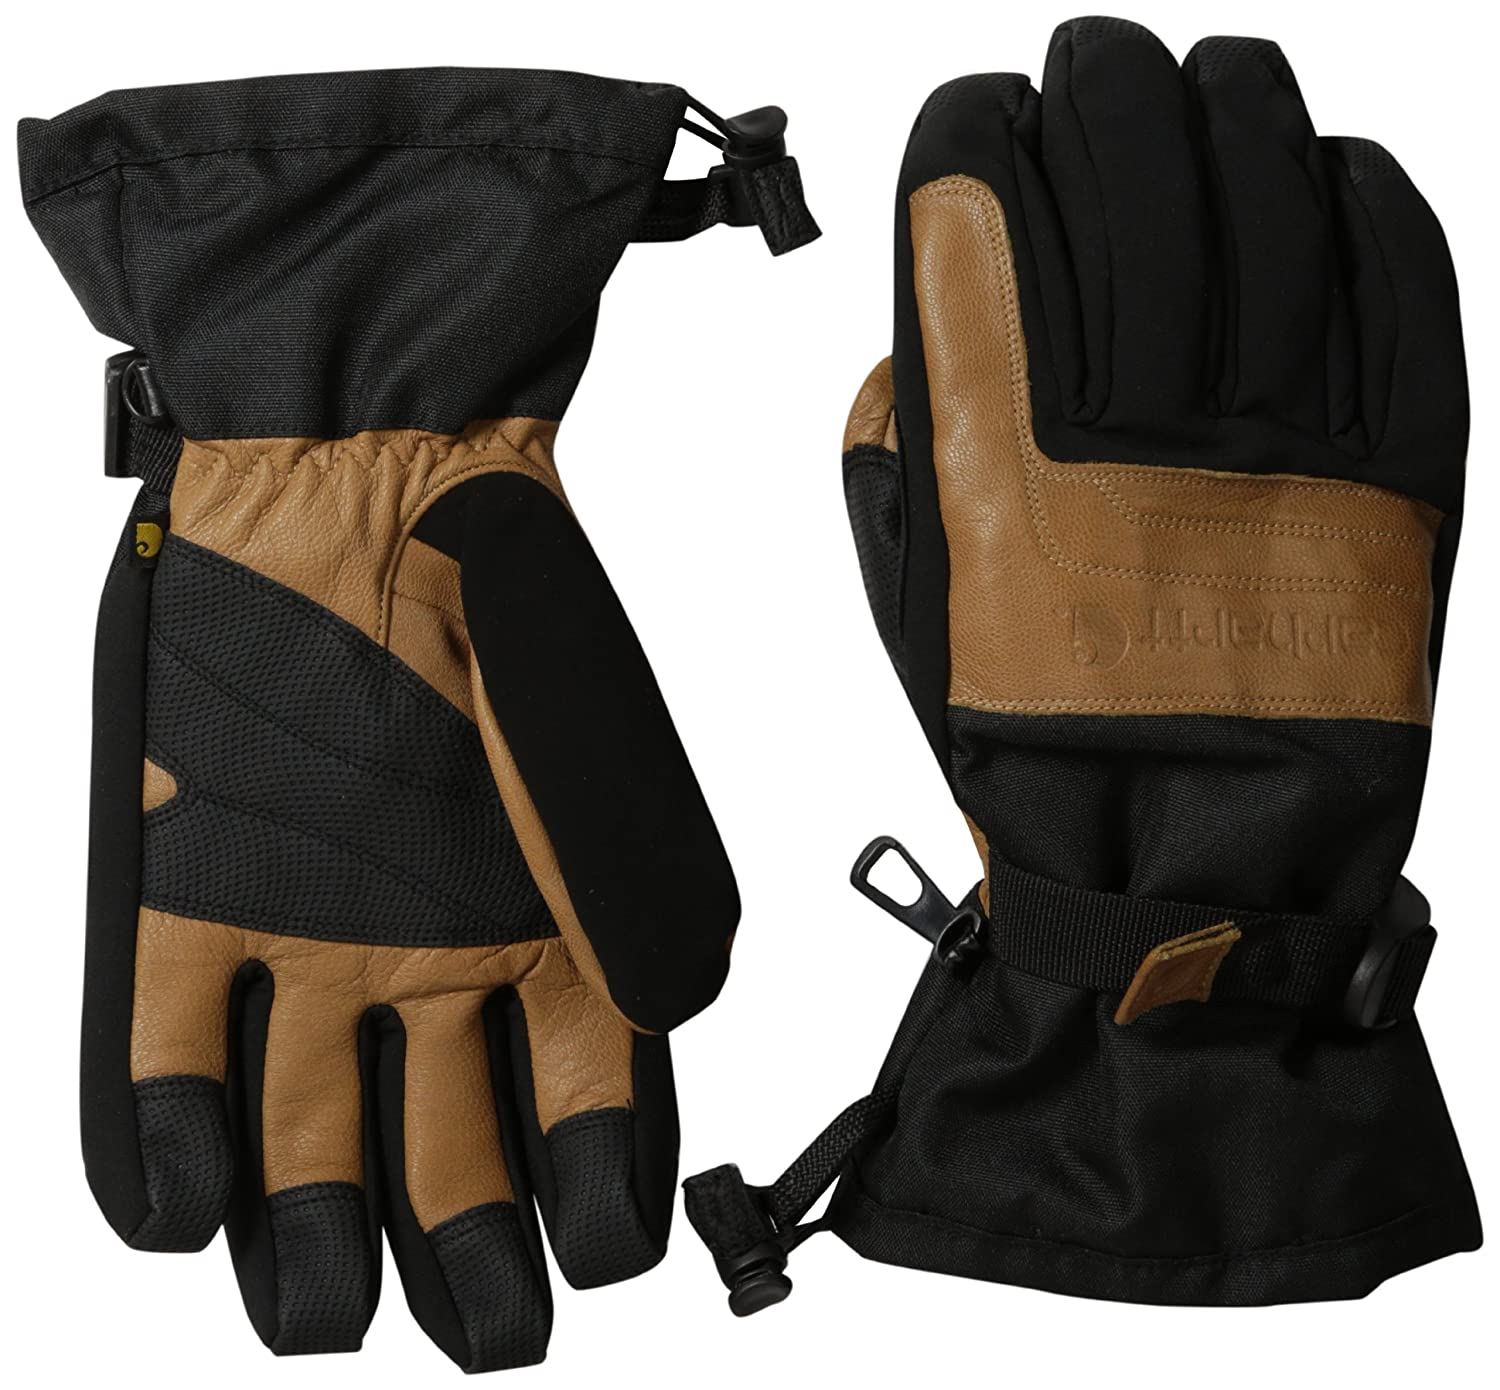 Carhartt Men's Cold Snap Insulated Work Glove, Black/Barley, Small A505